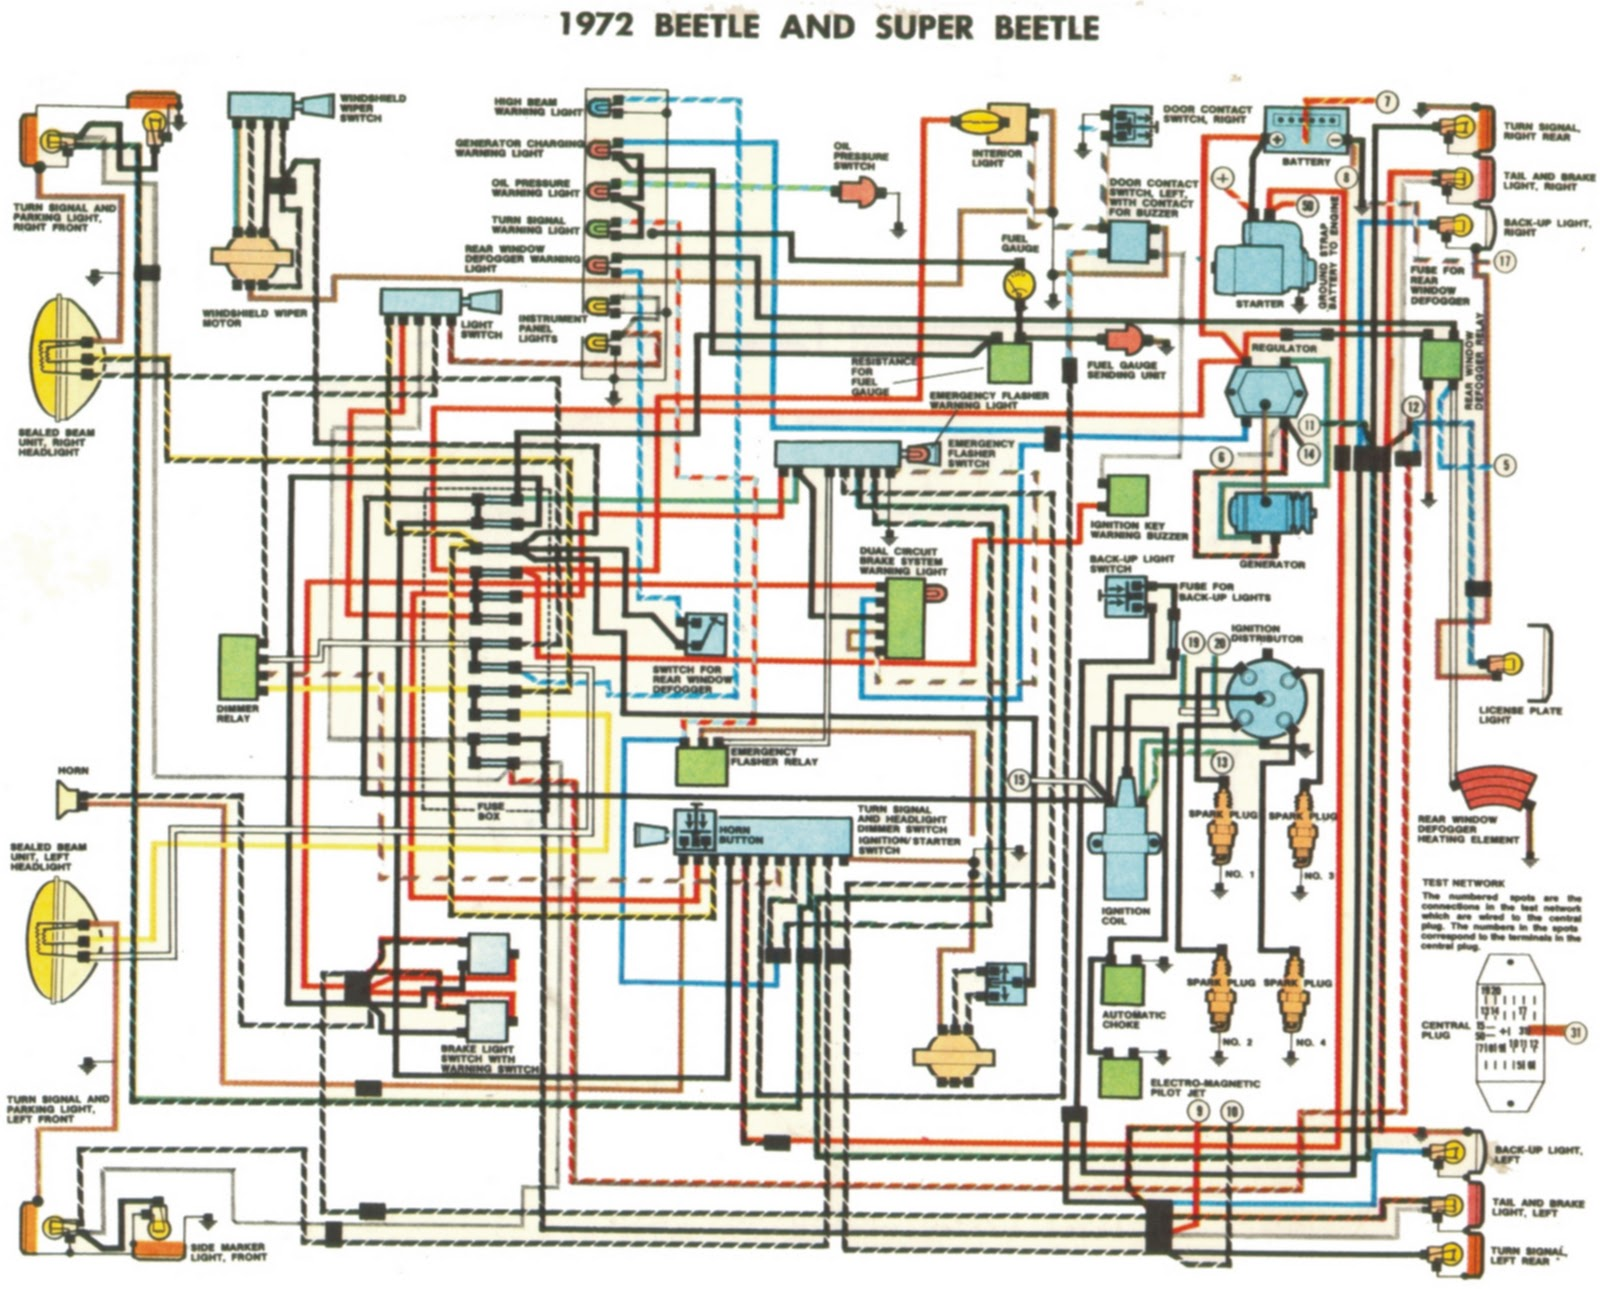 1972 beetle and super beetle wiring diagrams wiring diagrams for a 1973 vw super beetle readingrat net 1973 vw wiring diagram at nearapp.co